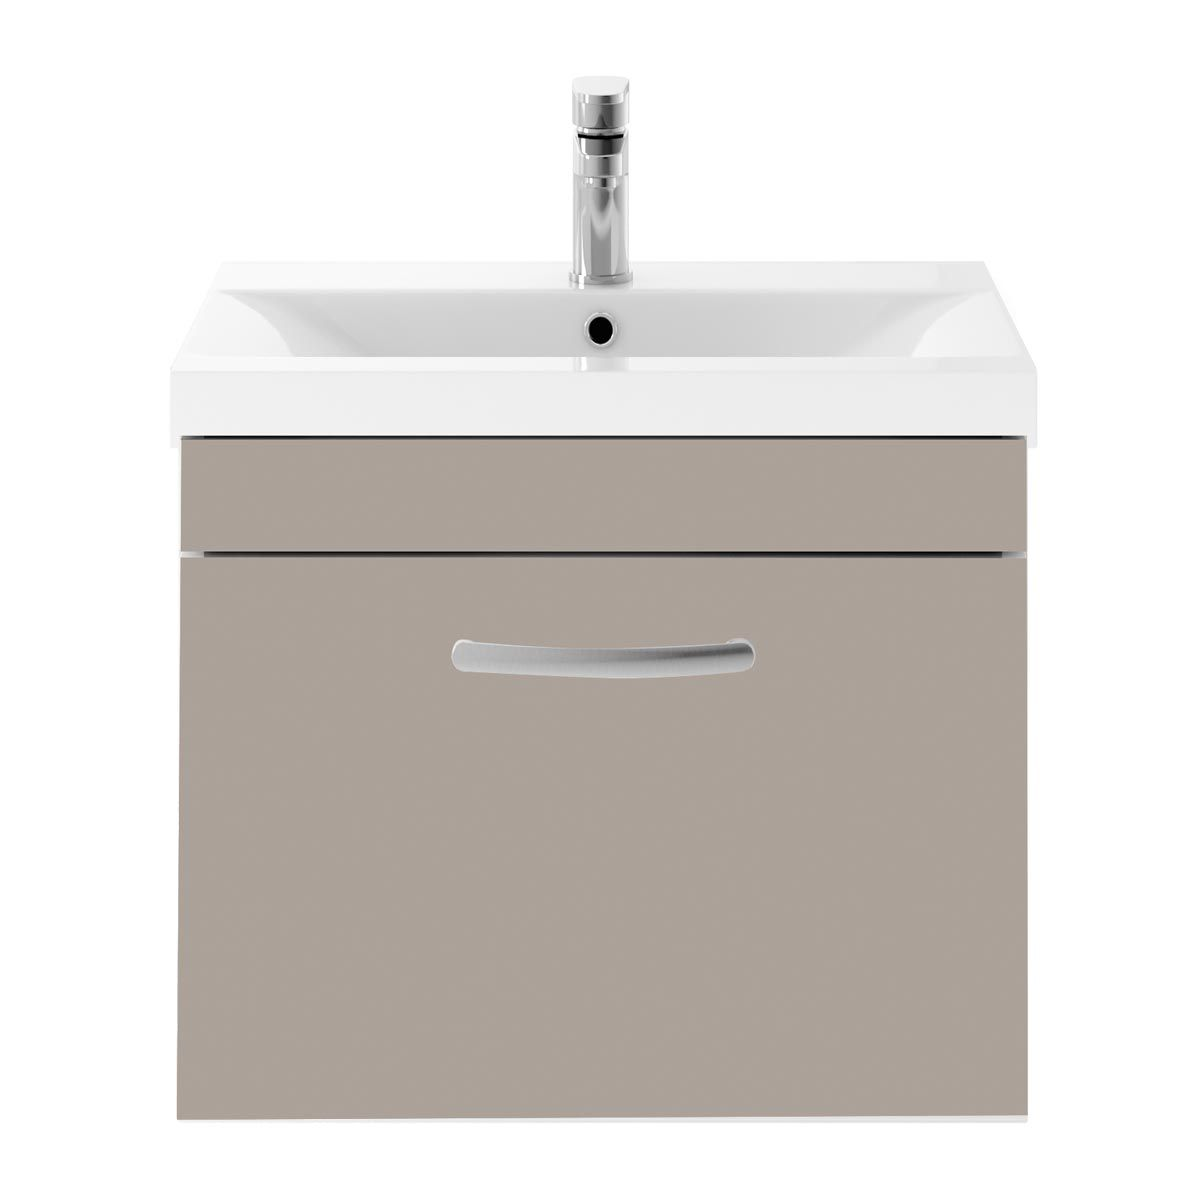 Nuie Athena Stone Grey 1 Drawer Wall Hung Vanity Unit with 40mm Profile Basin 600mm